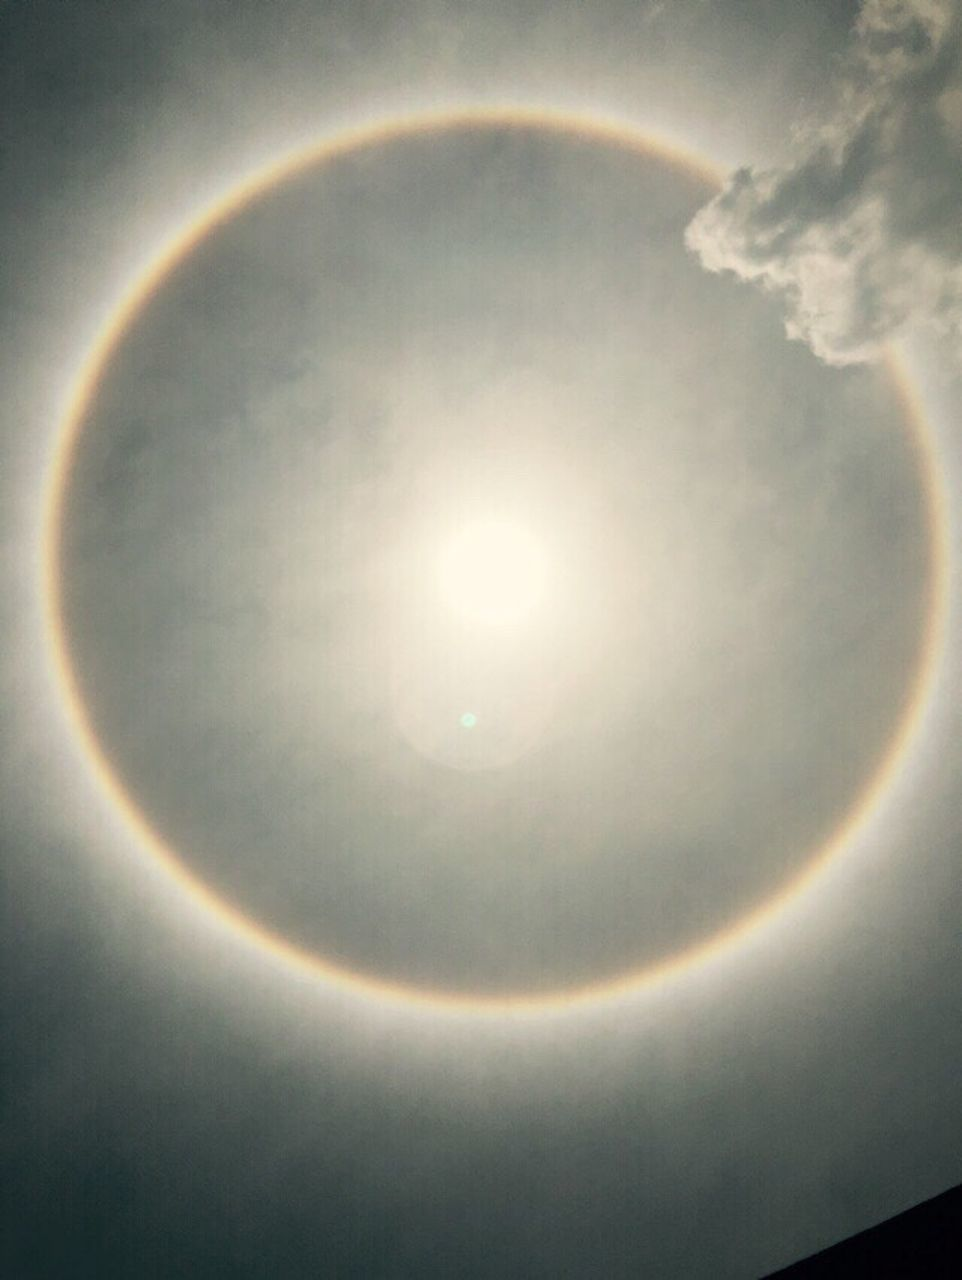 circle, no people, rainbow, beauty in nature, sun, nature, halo, solar eclipse, close-up, outdoors, day, sky, astronomy